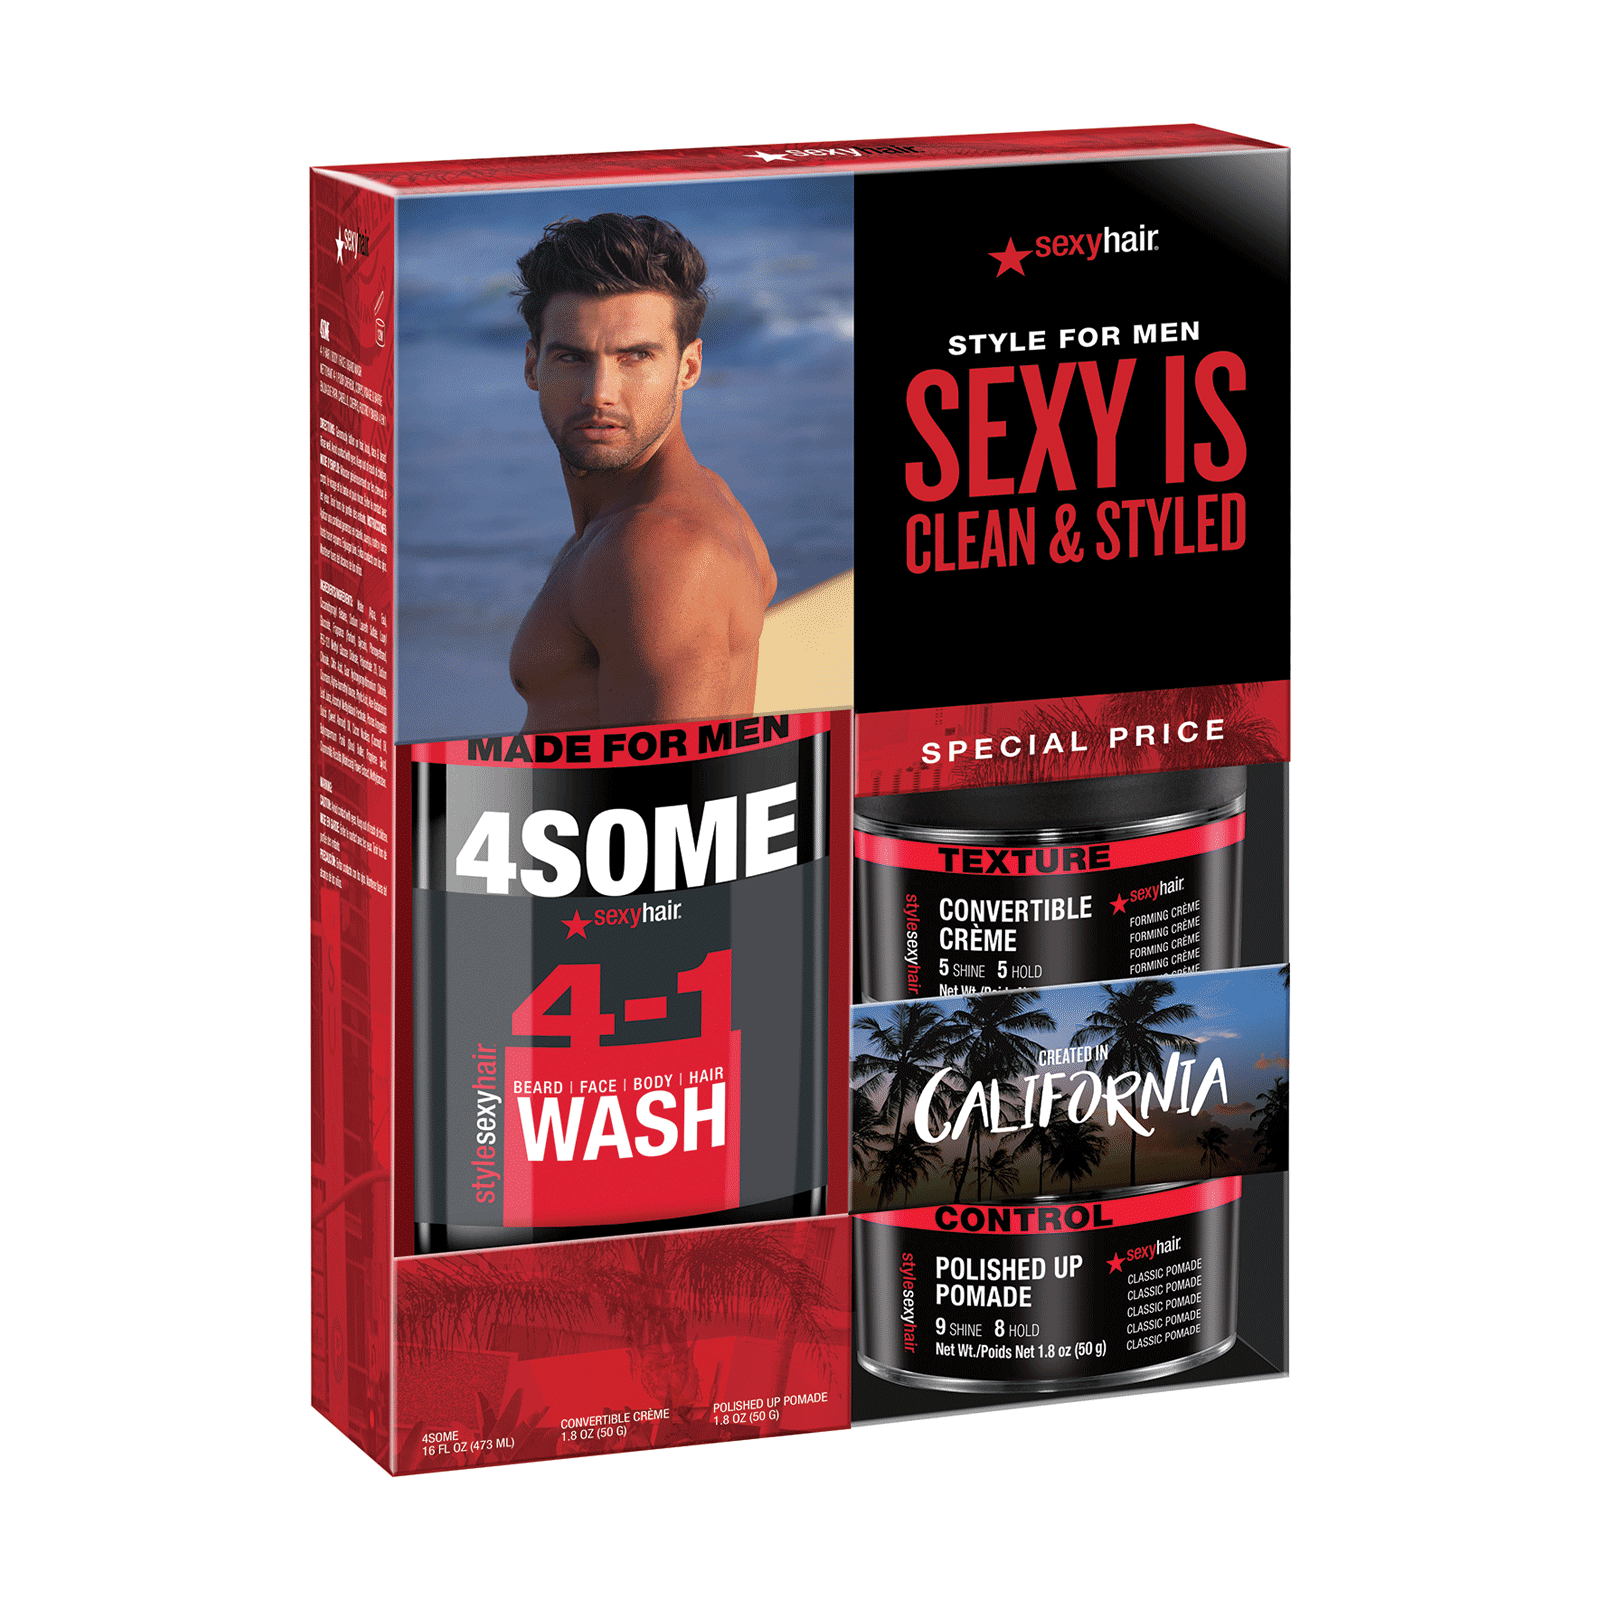 Style Sexy Hair Mens Trial Kit - Sexy Hair Concepts | CosmoProf